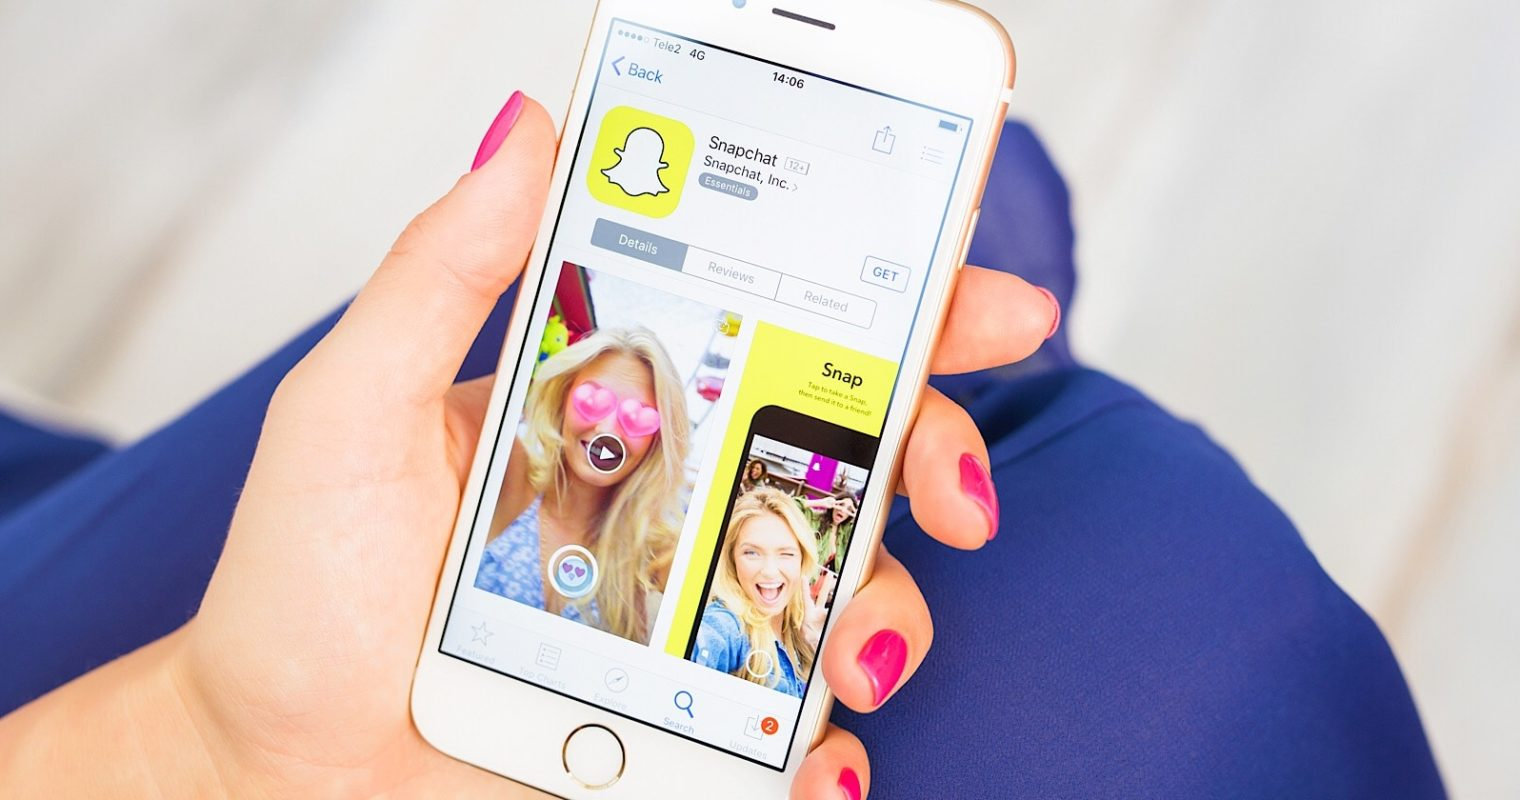 Now You Can Share Links to Snapchat from Third Party Apps on iOS